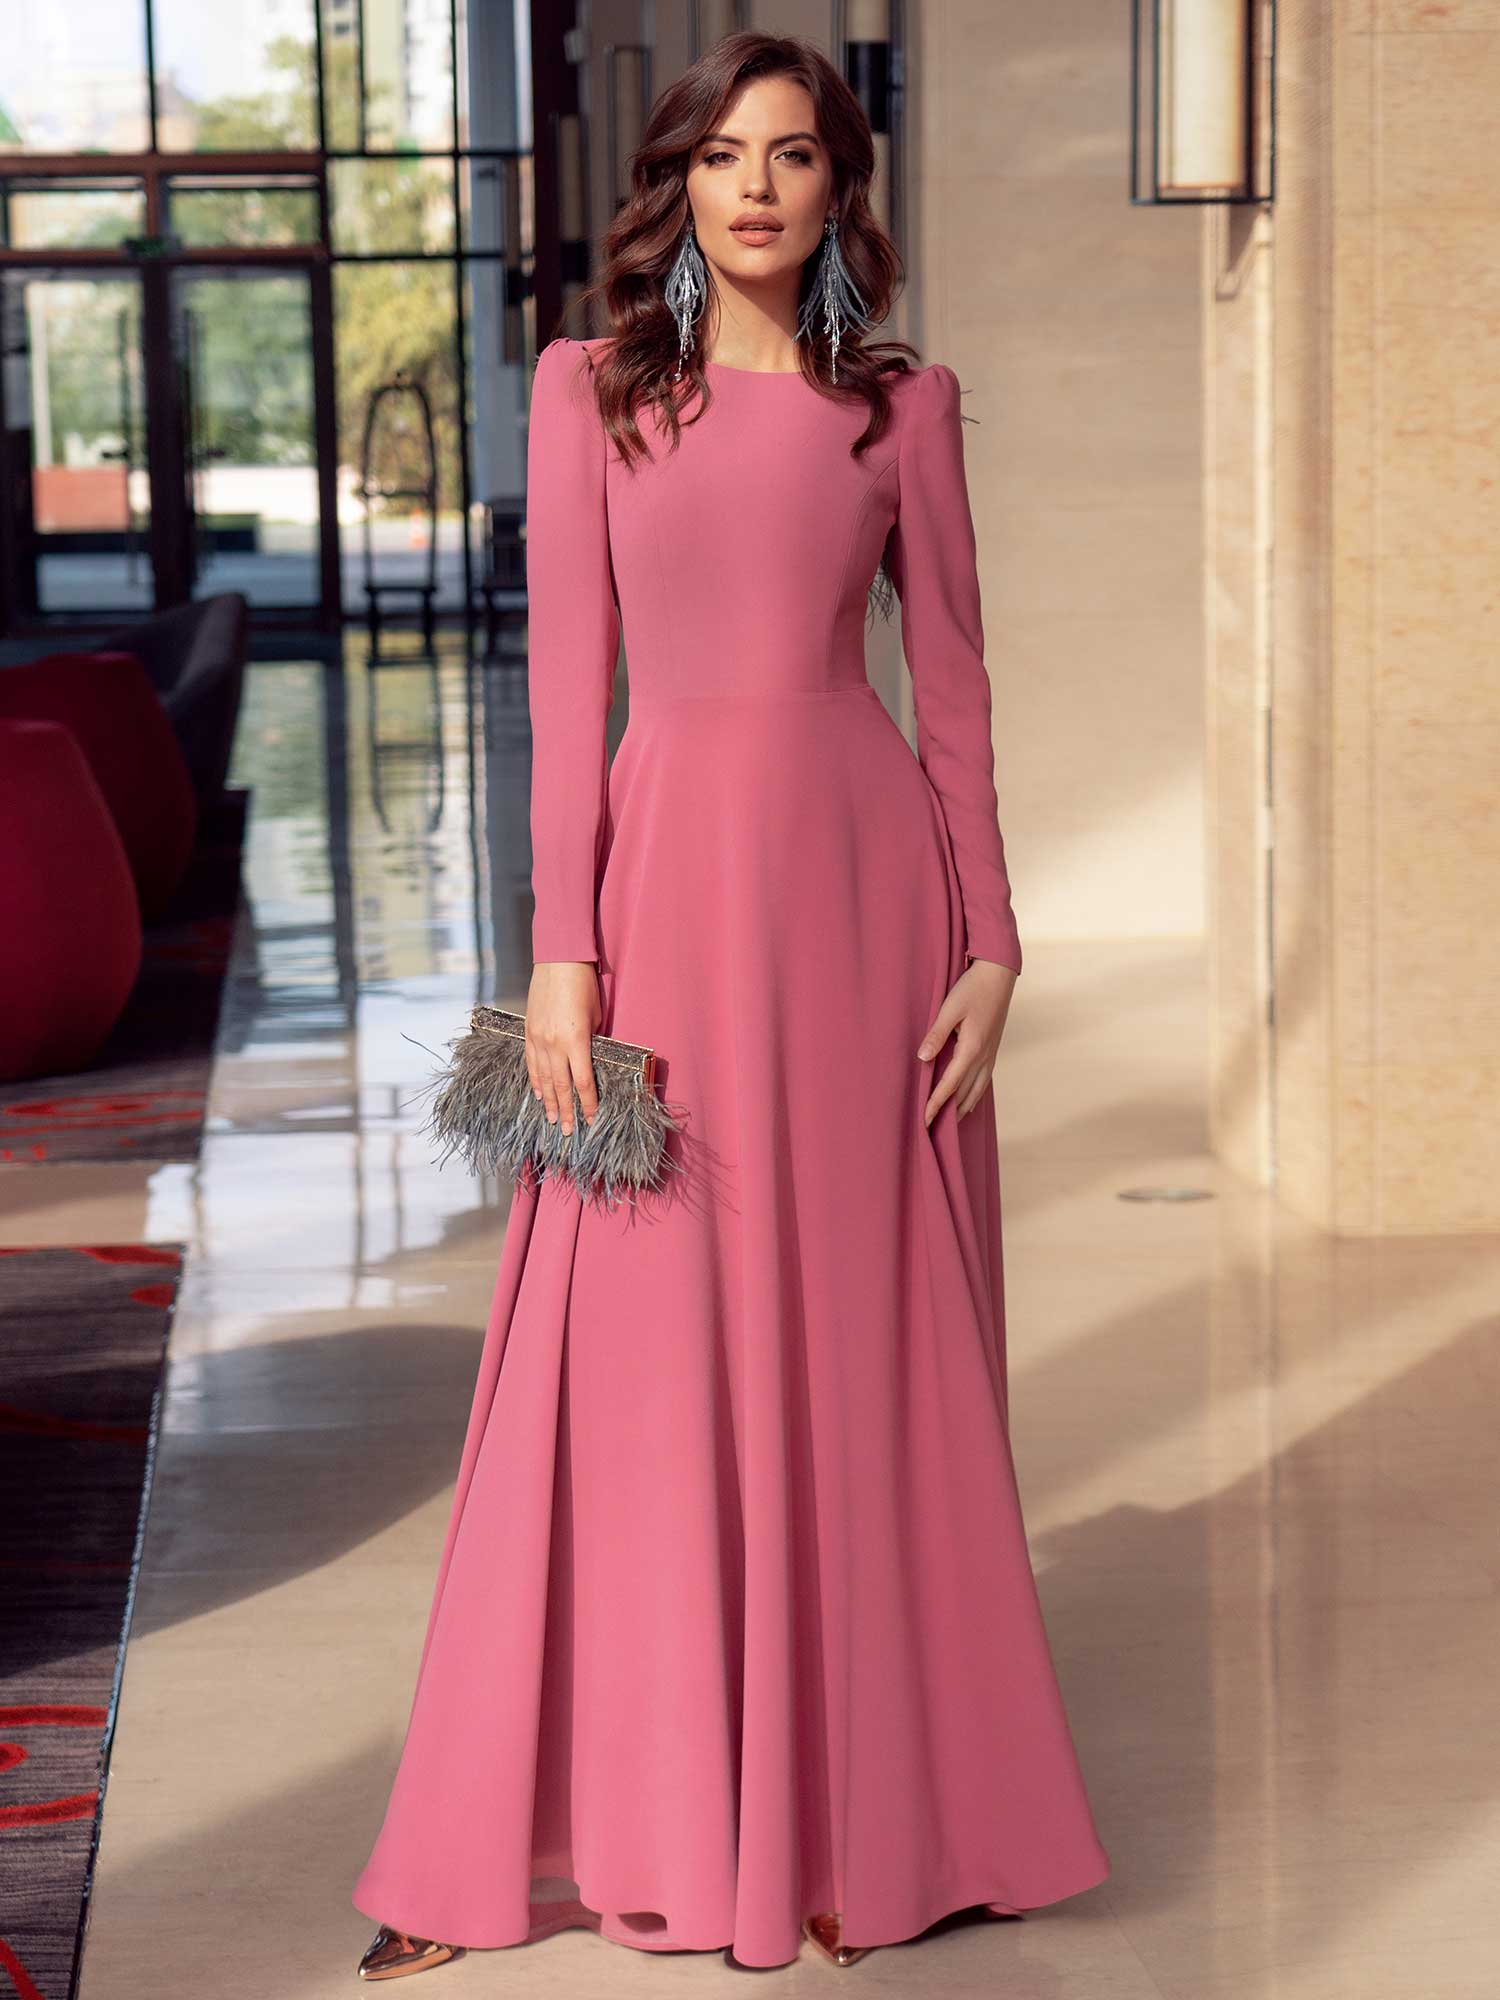 Style #569, elegant long dress with illusion back, available in lilac, red, blue, pink, lilac-brown, sea-green, ivory